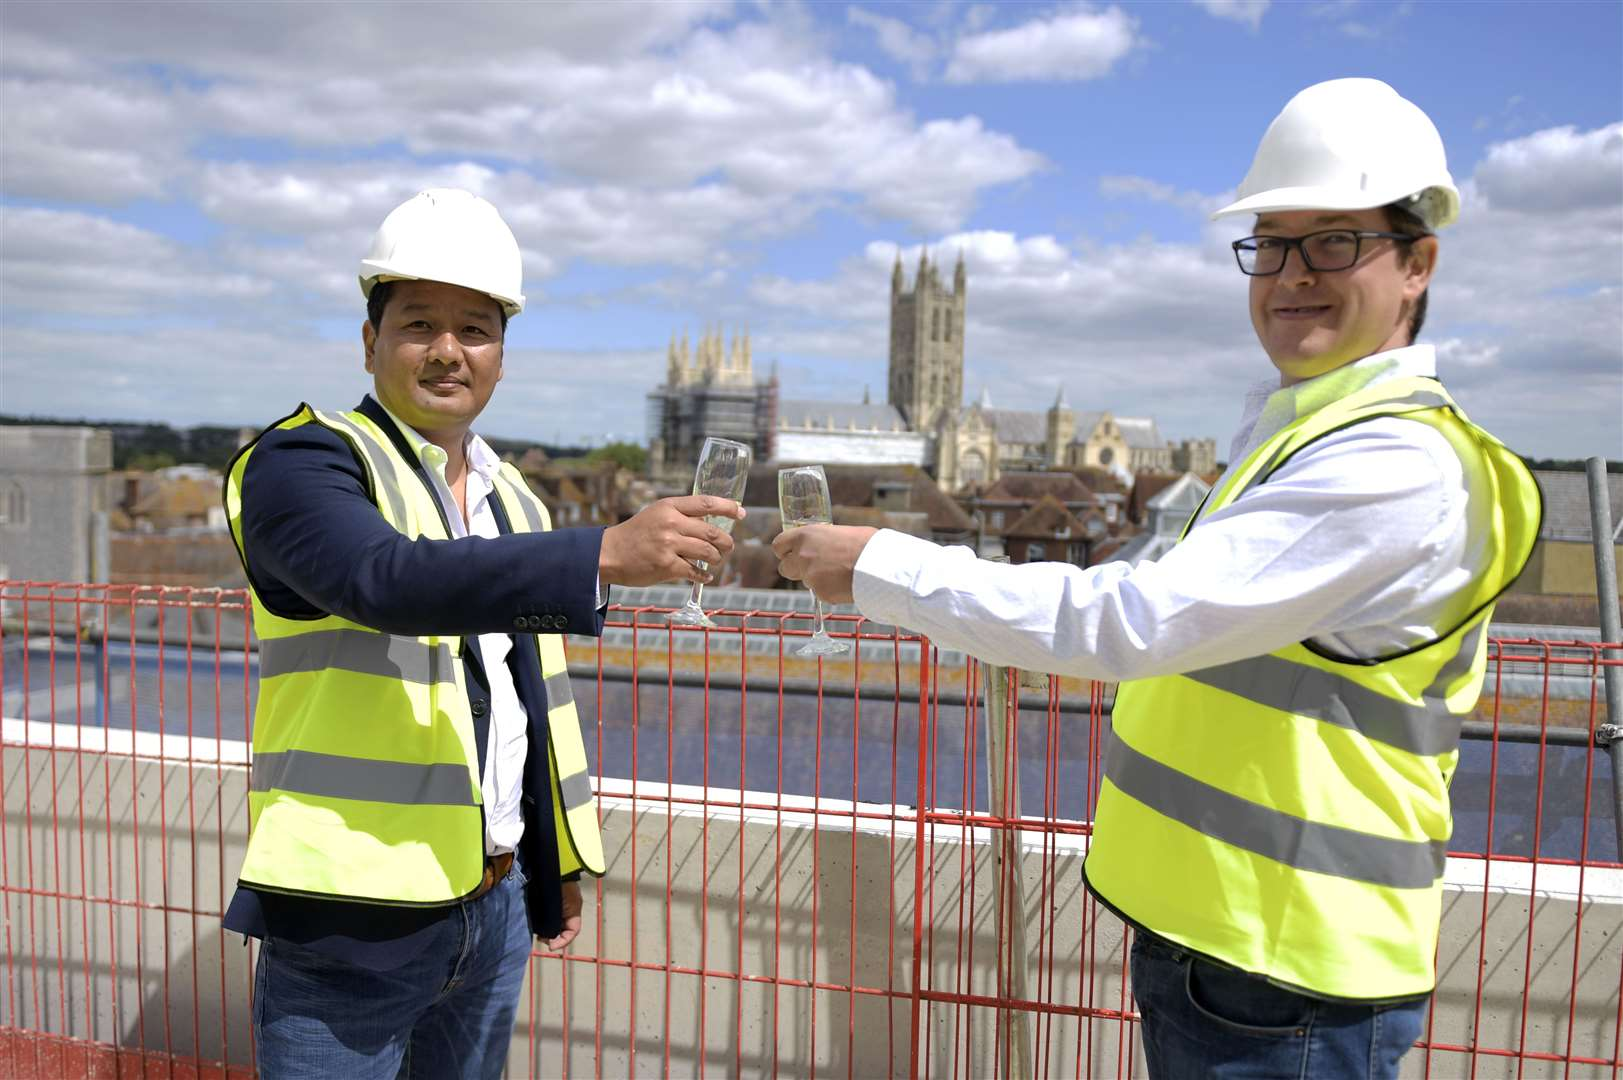 Co-directors of Slatters Development Ltd Zaw Htut and Mike Wood celebrate the topping out ceremony with champagne